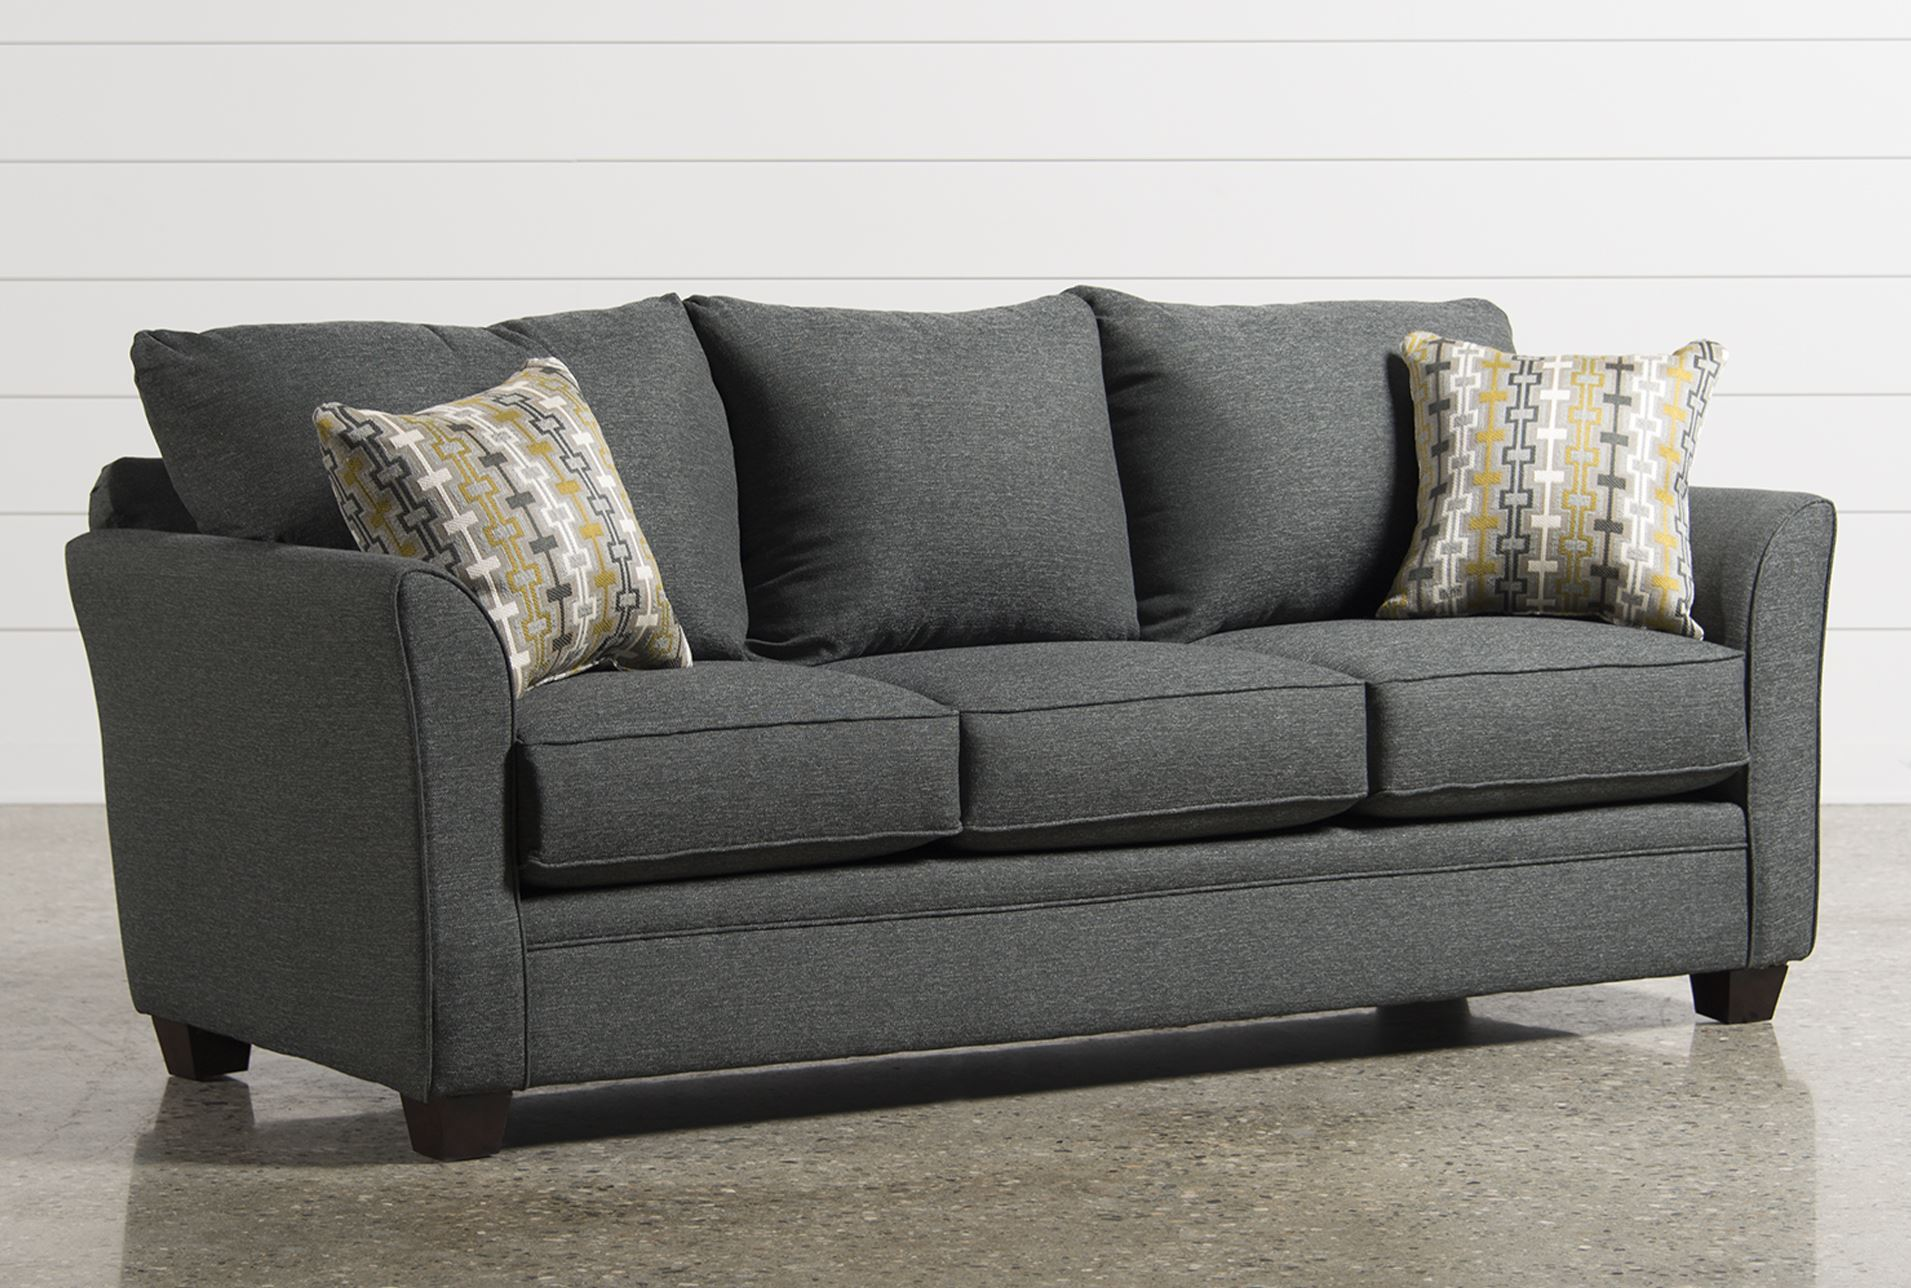 Julia sofa living spaces for Living spaces couches